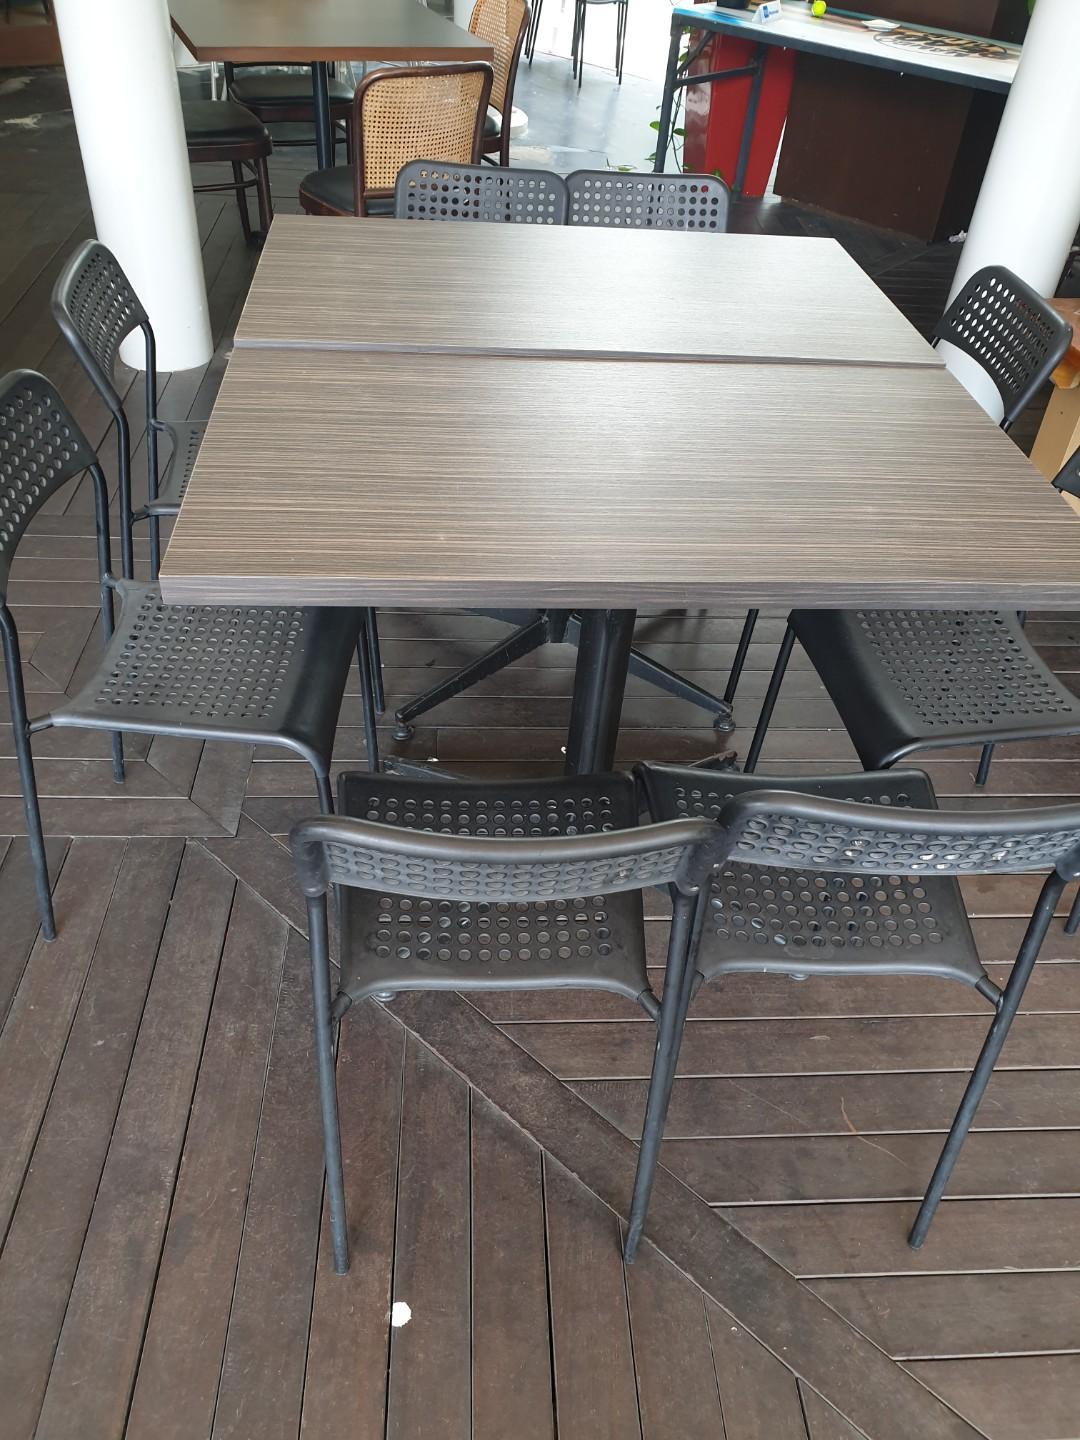 Restaurant Tables For Sale >> Restaurant Tables And Chairs For Sale Furniture Tables